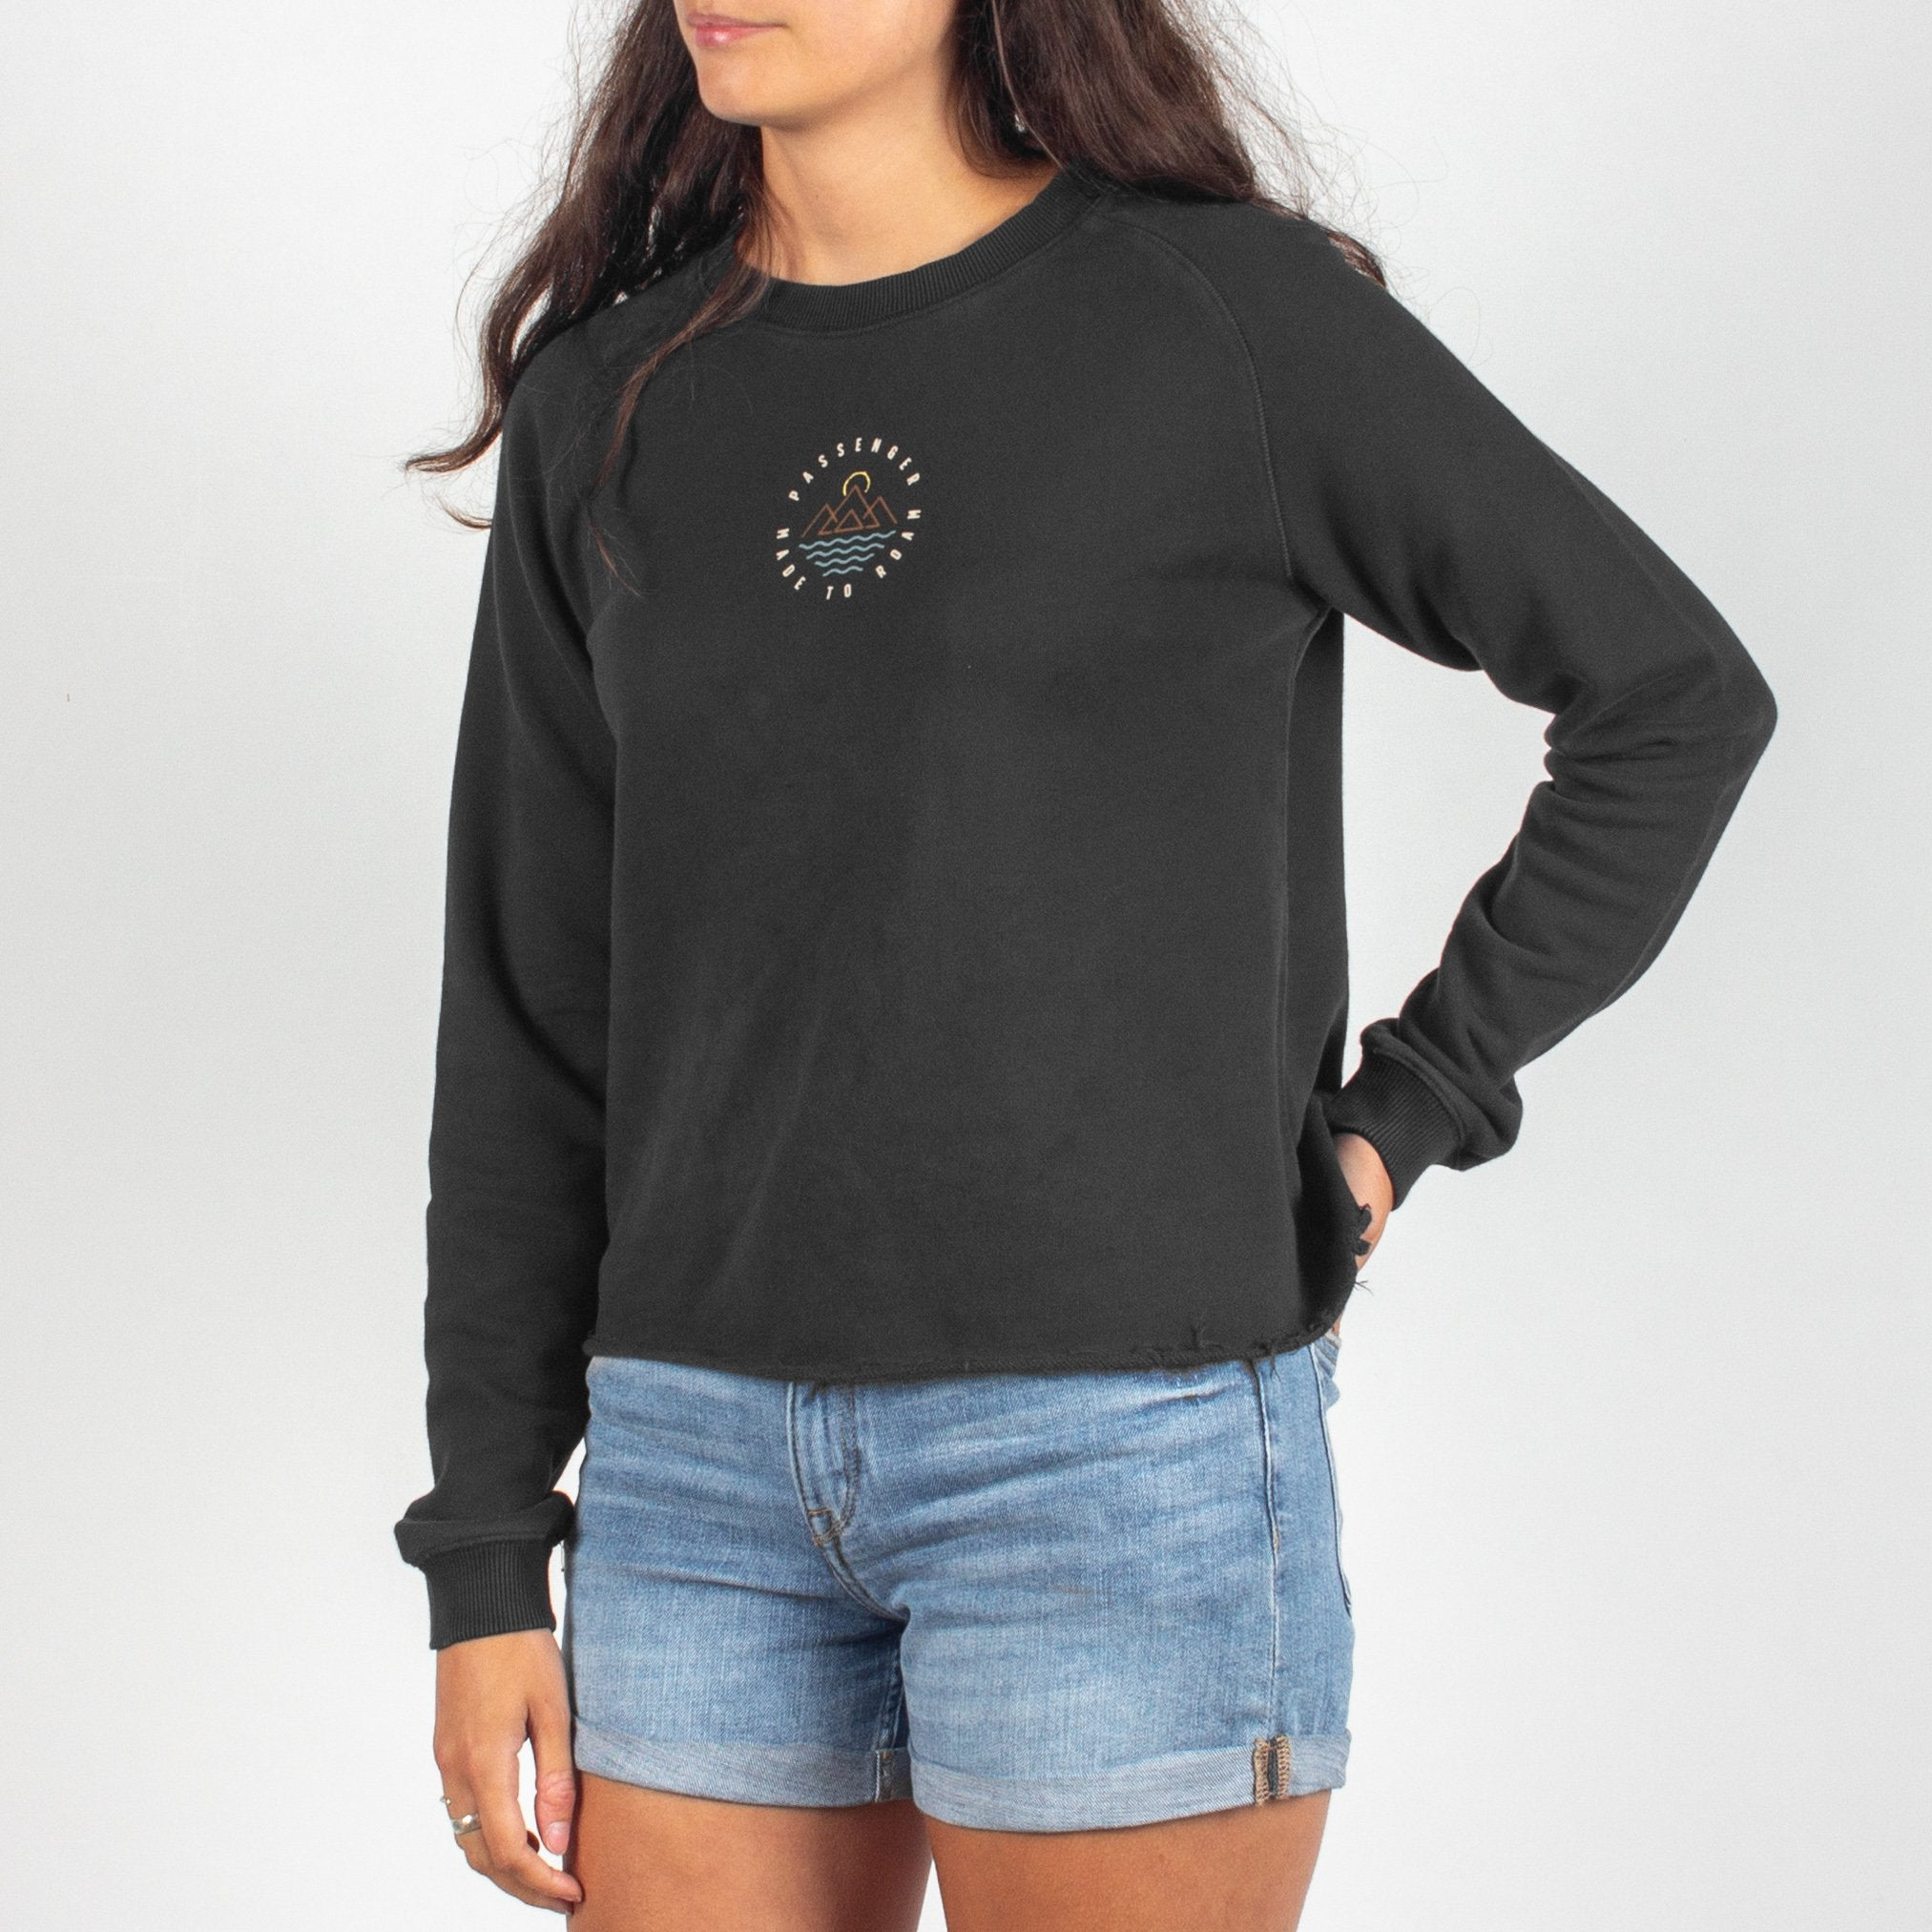 Remote Sweatshirt - Black image 2